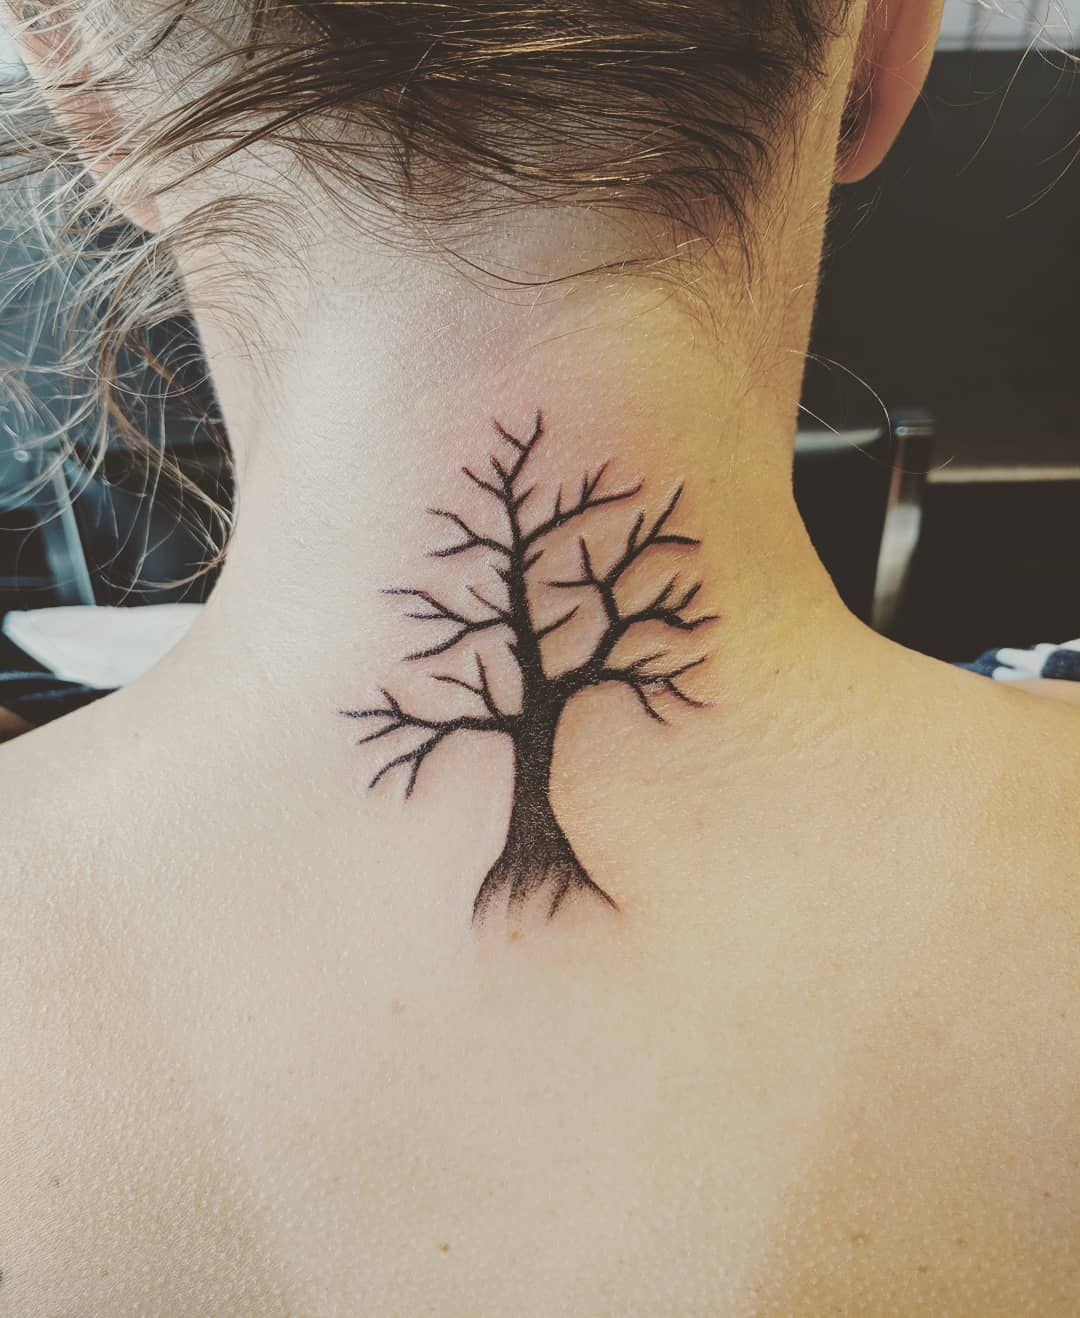 10 Best Places To Get A Hidden Tattoo Places to get